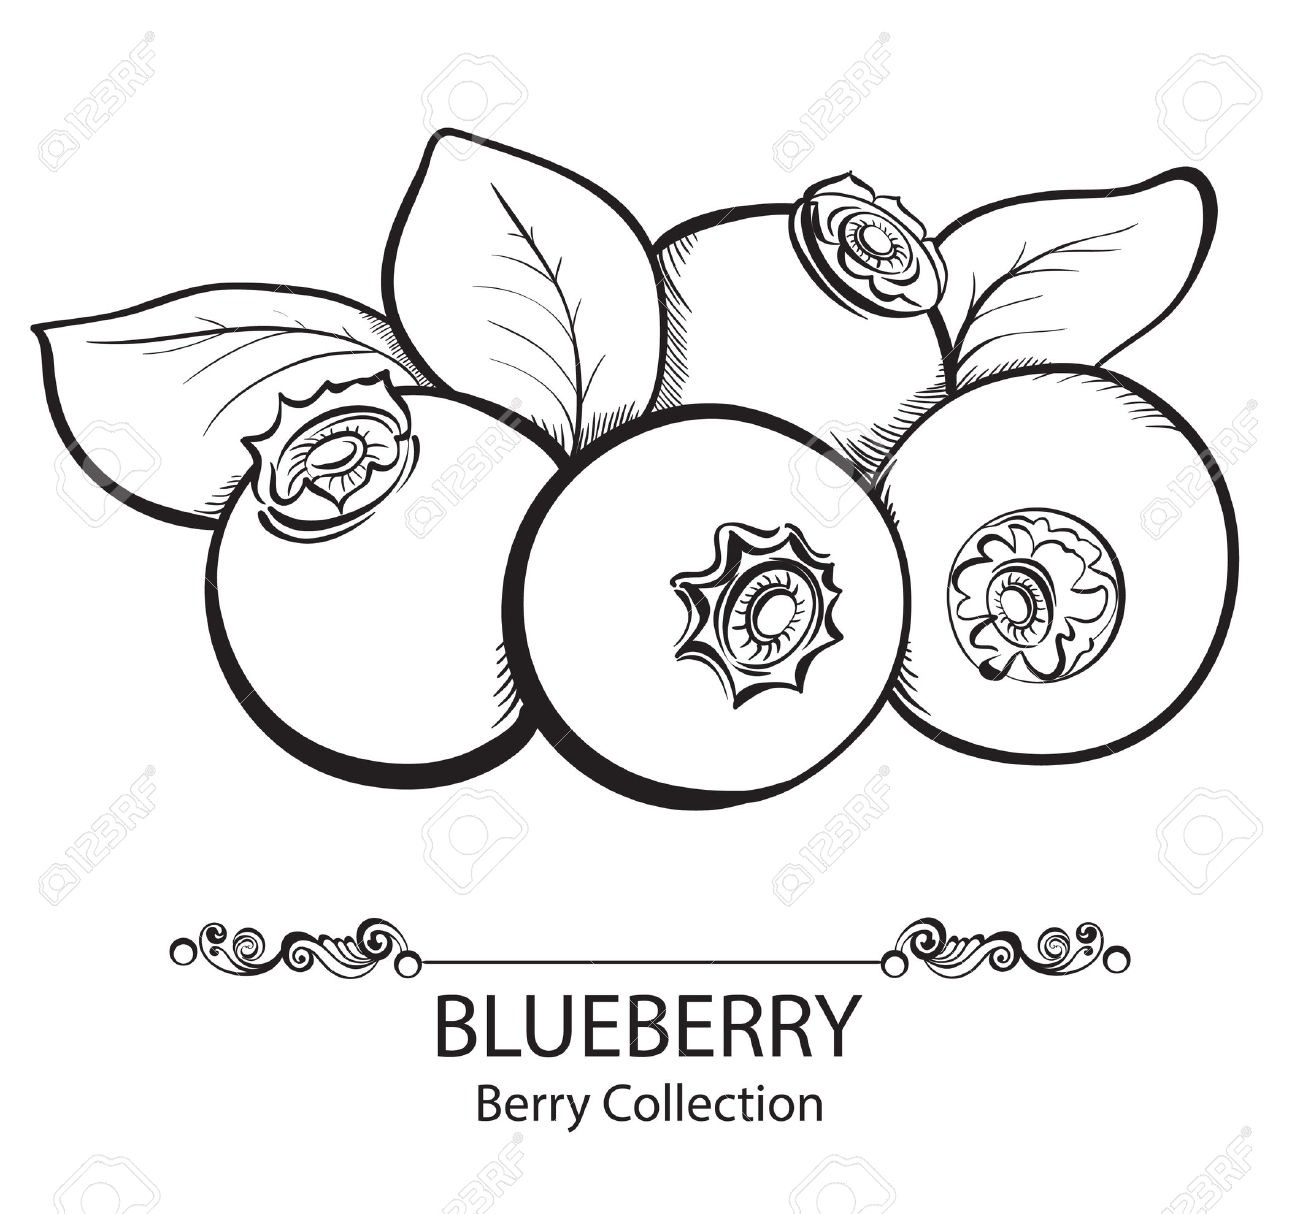 Station . Blueberry clipart black and white